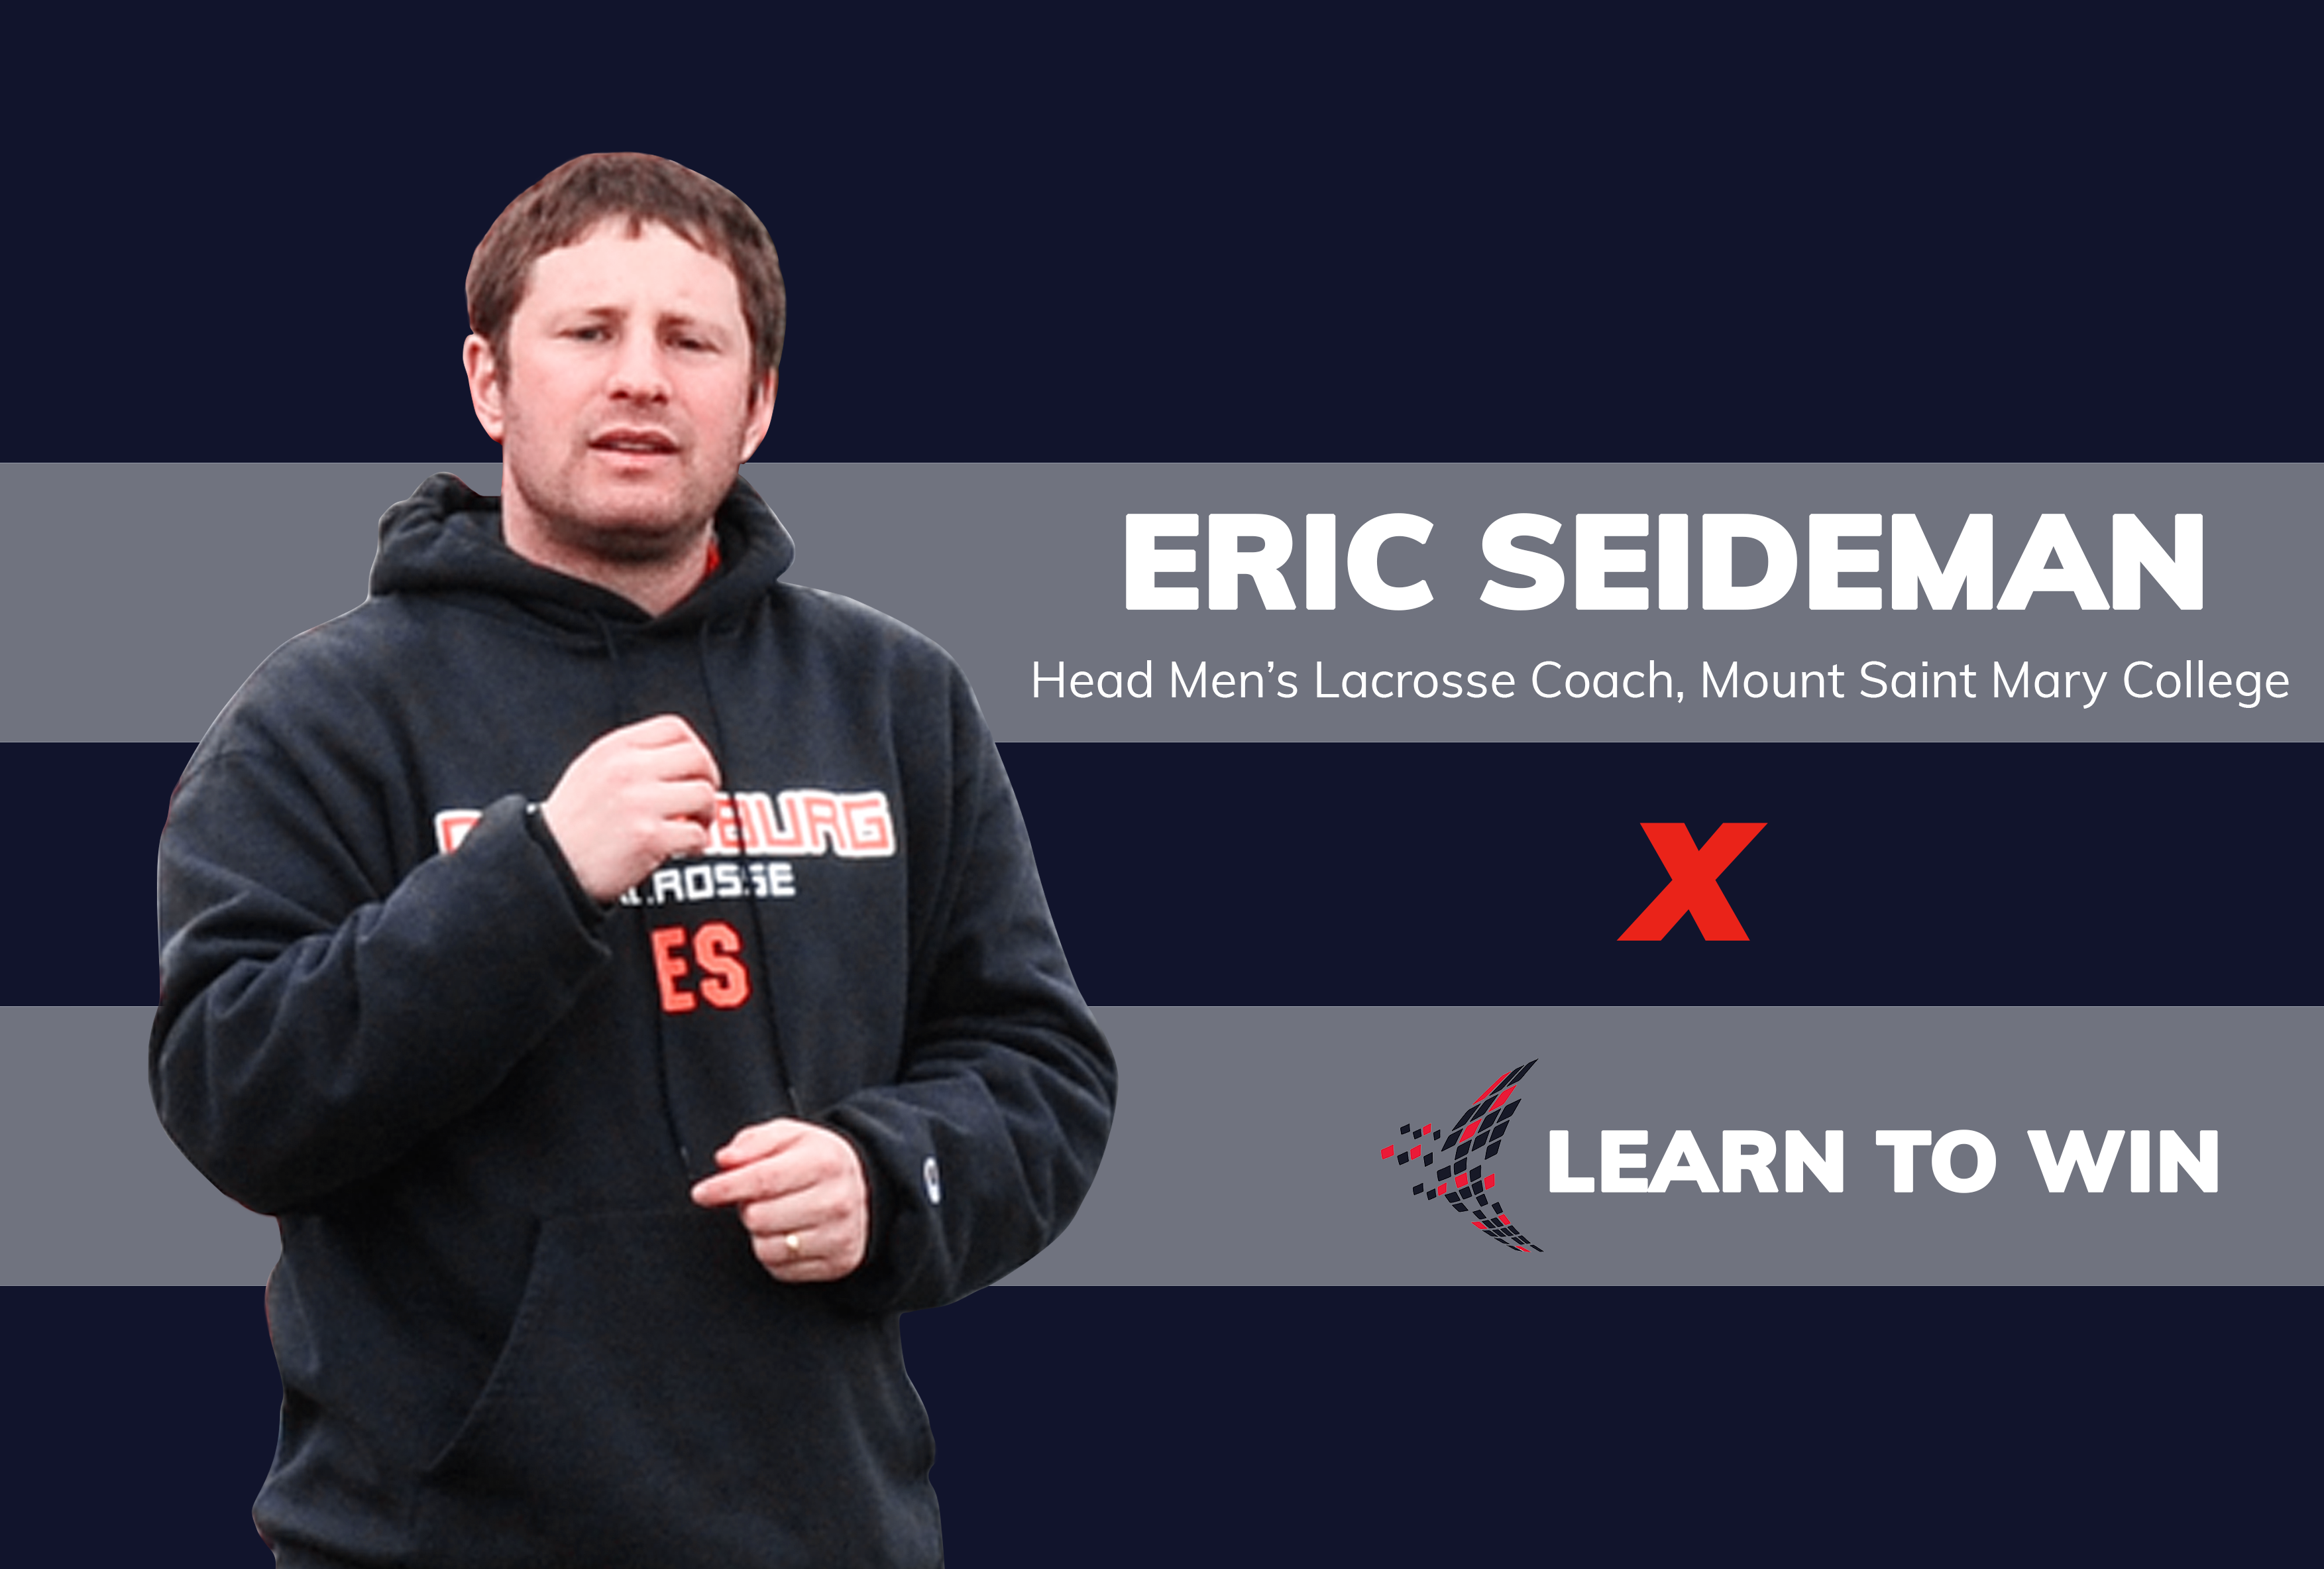 Eric Seideman, men's lacrosse coach